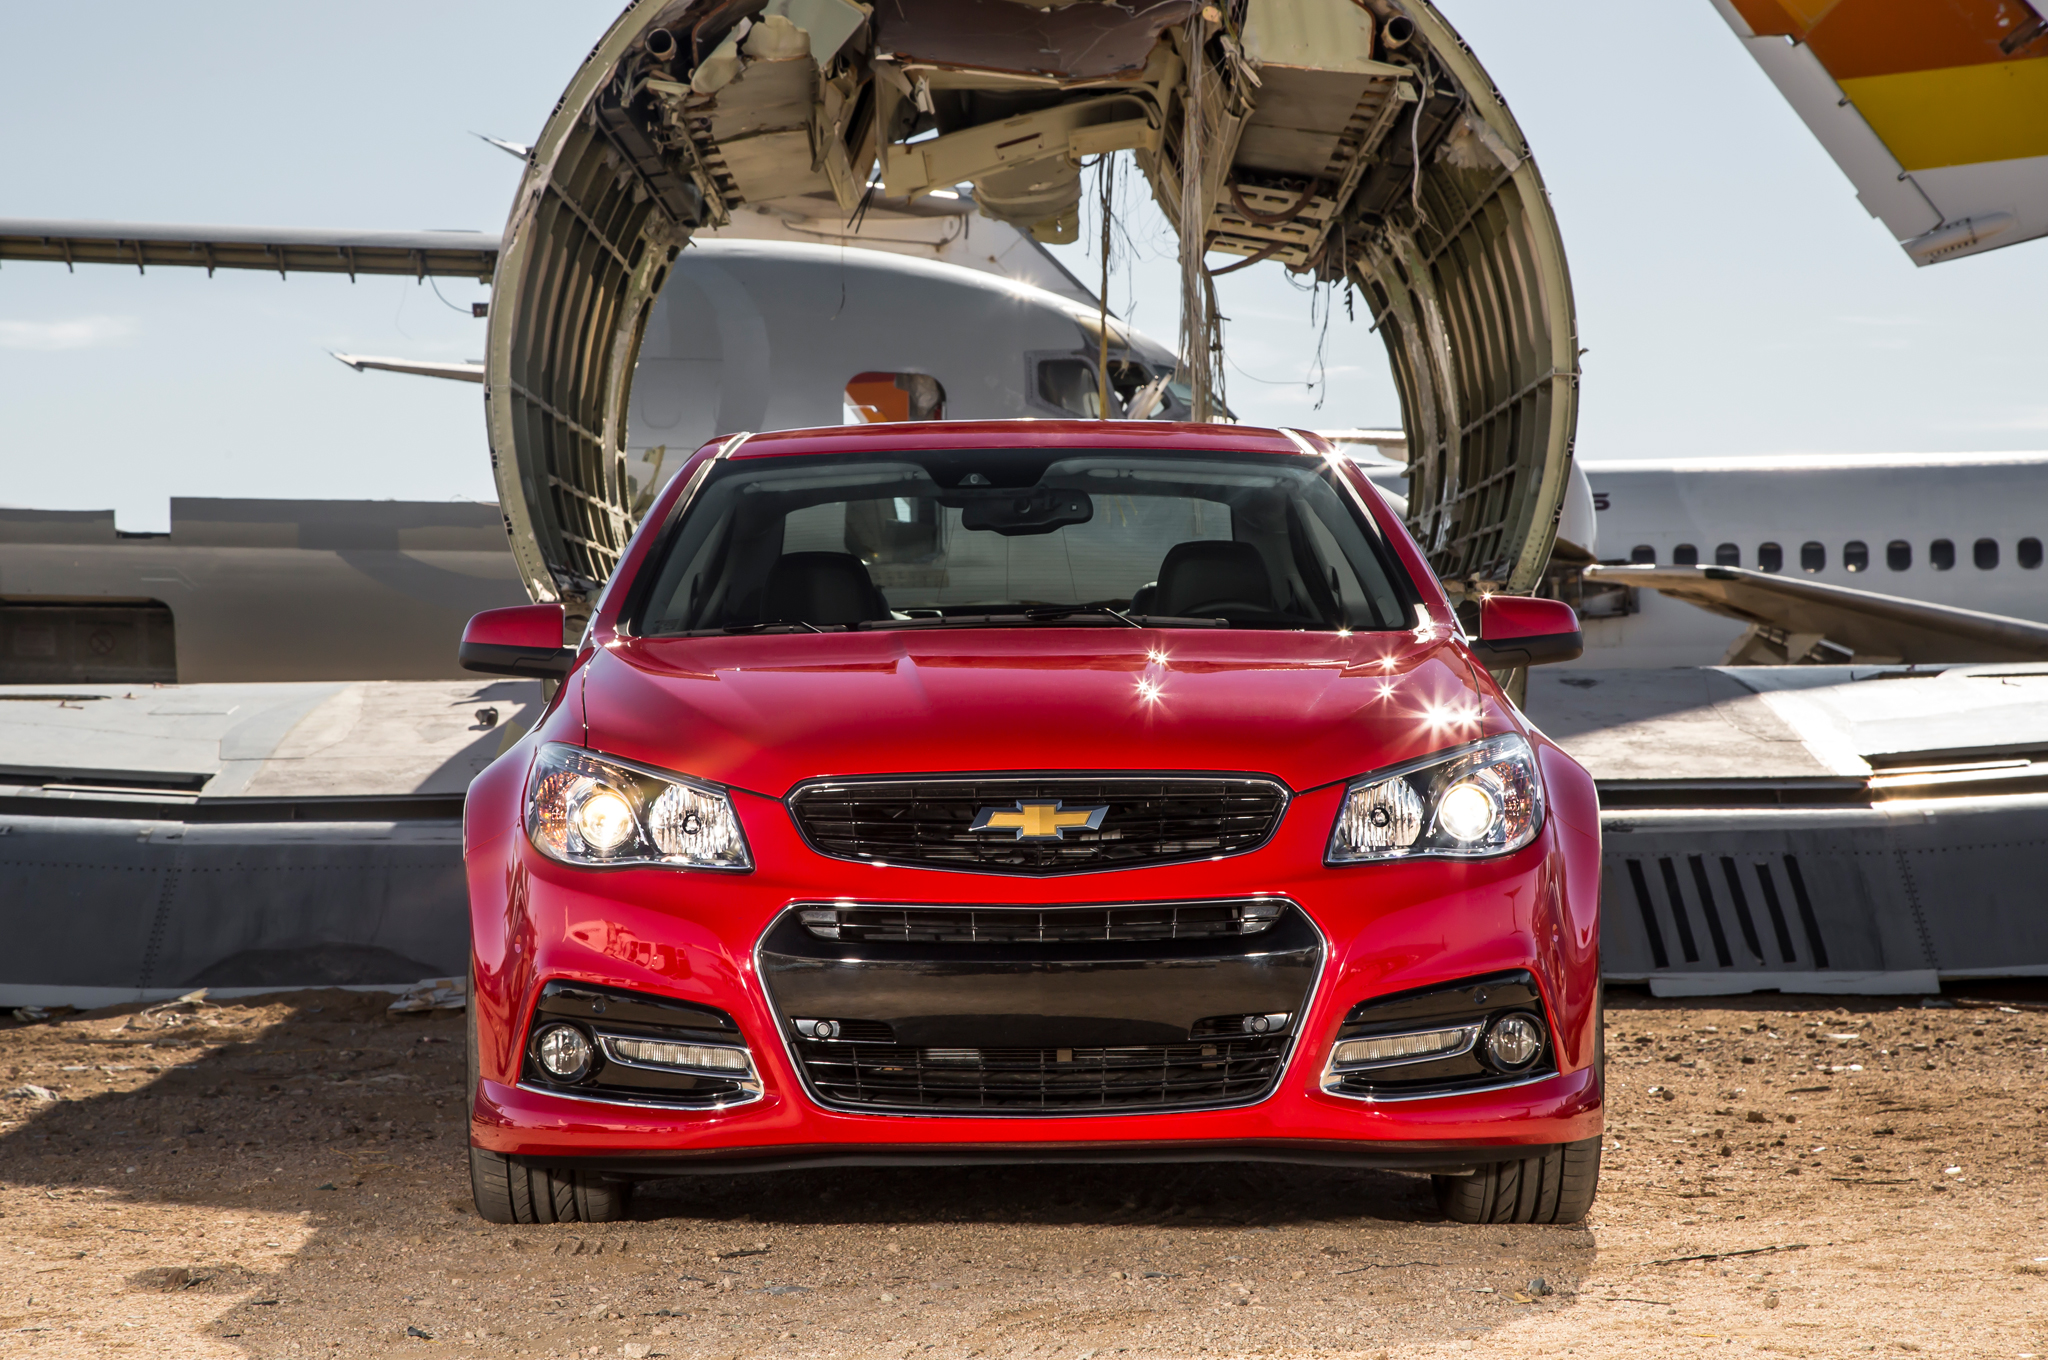 We Hear: Could Holden Special Vehicles Expand to Chevrolet?